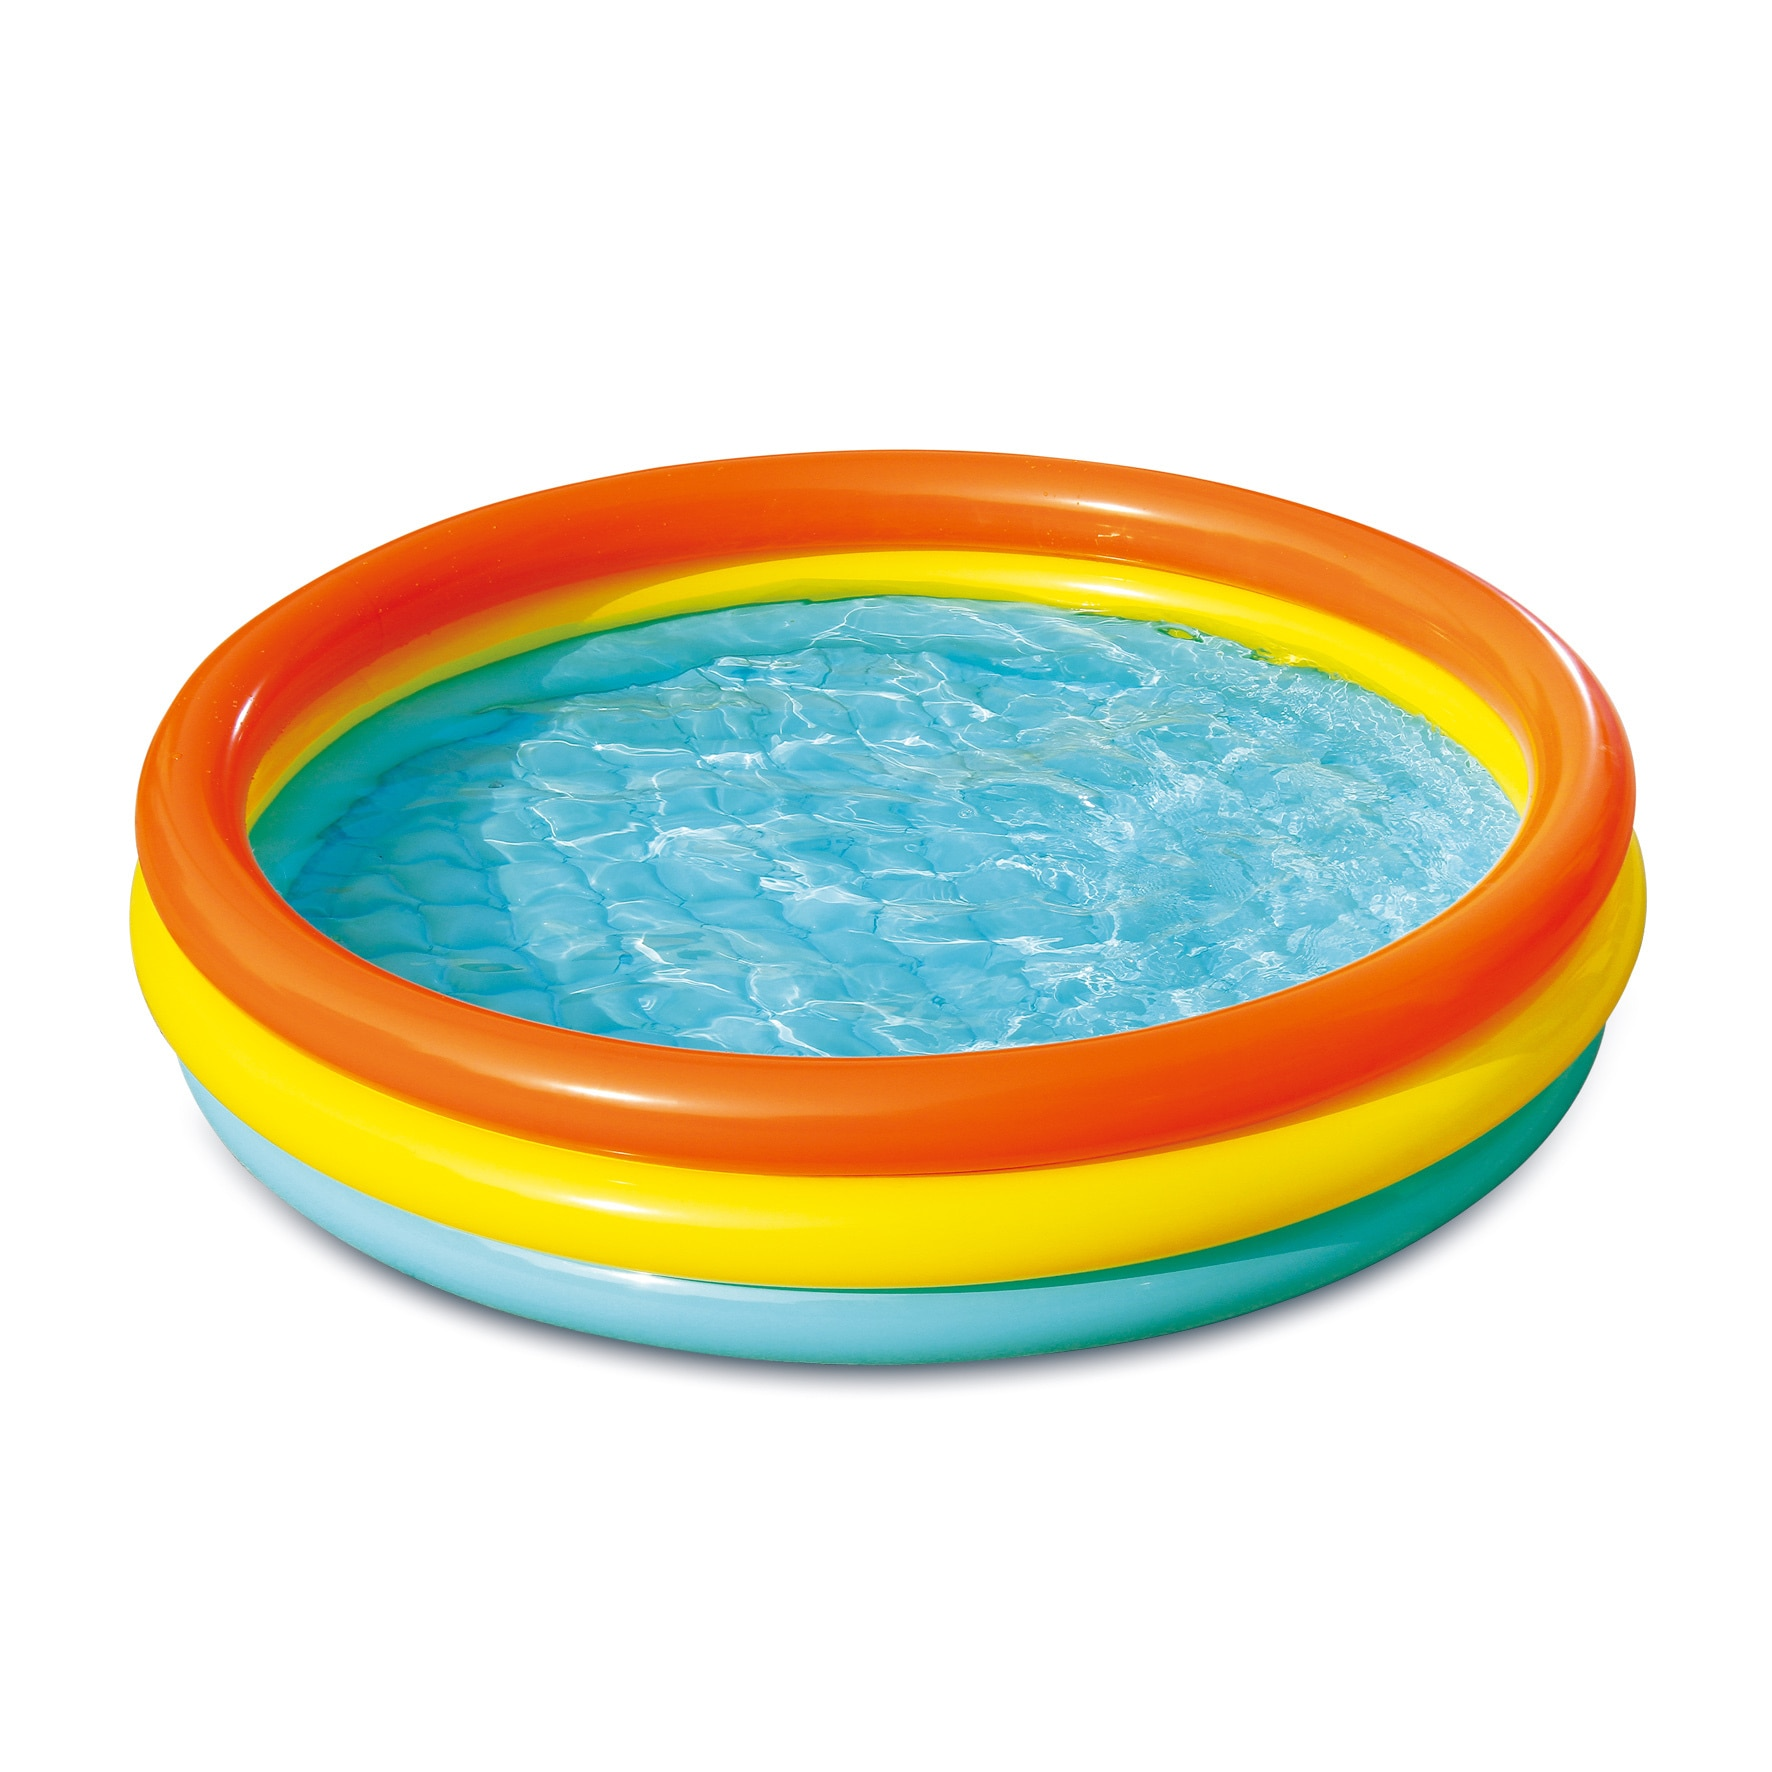 Polygroup Multicolored Inflatable Wading Pool (Multi)